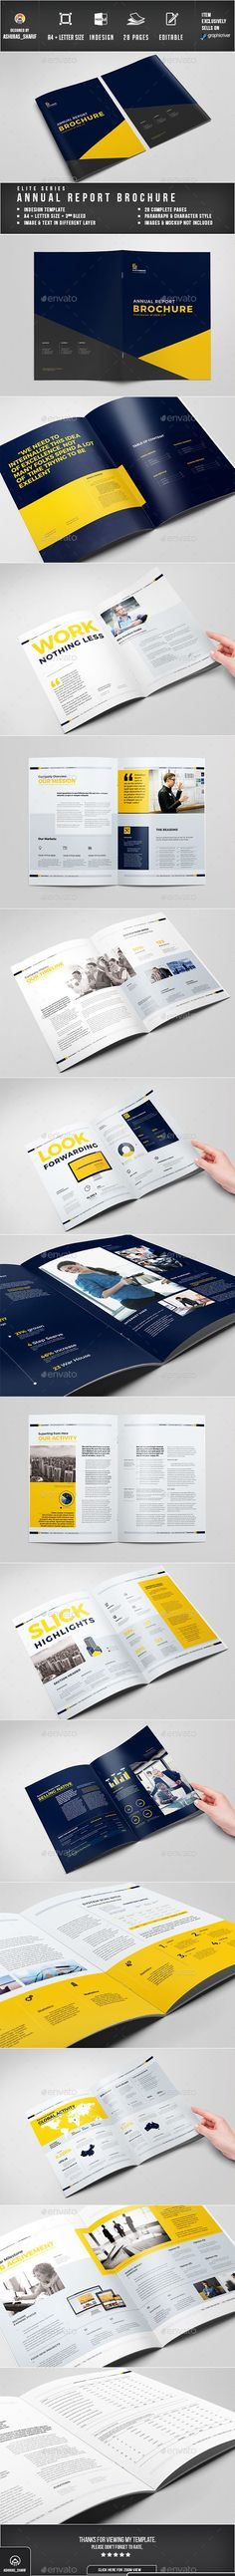 Business Brochure Template INDD Brochure Templates Pinterest - business annual report template